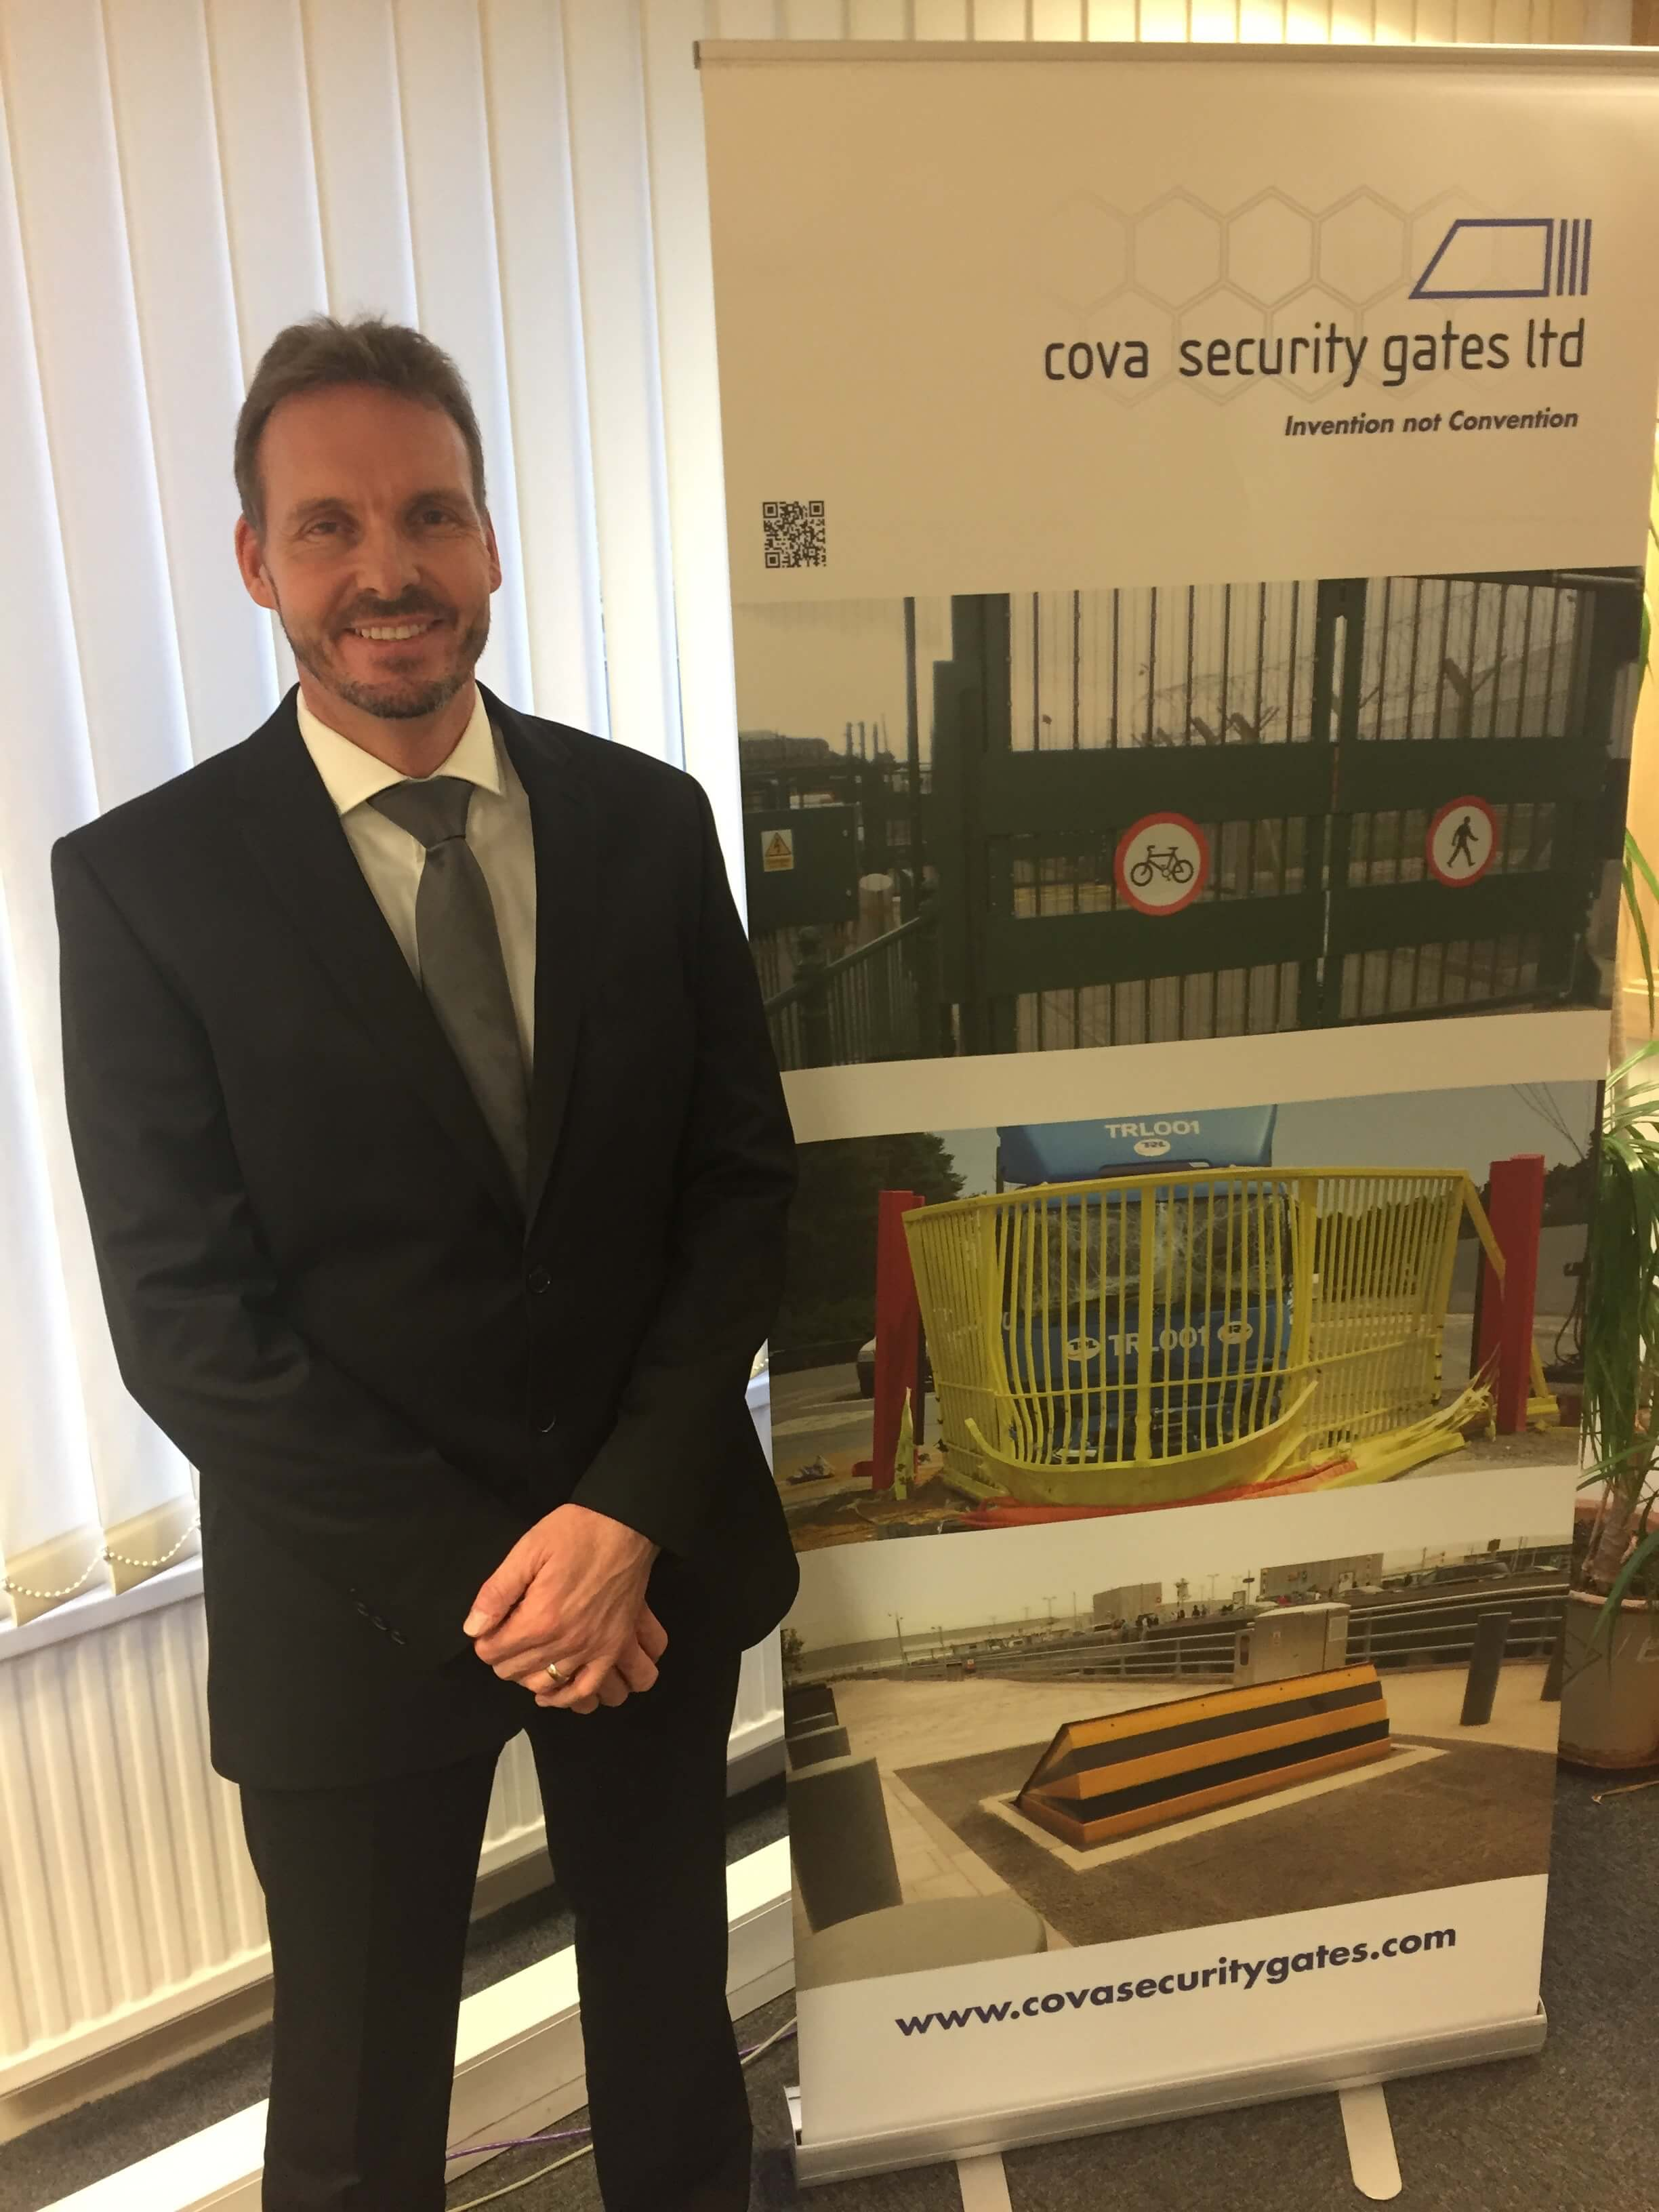 News Pssa Cardinal Formal Slim Fit Office Pants Abu 30 Cova Security Gates Appoints Two New Board Directors